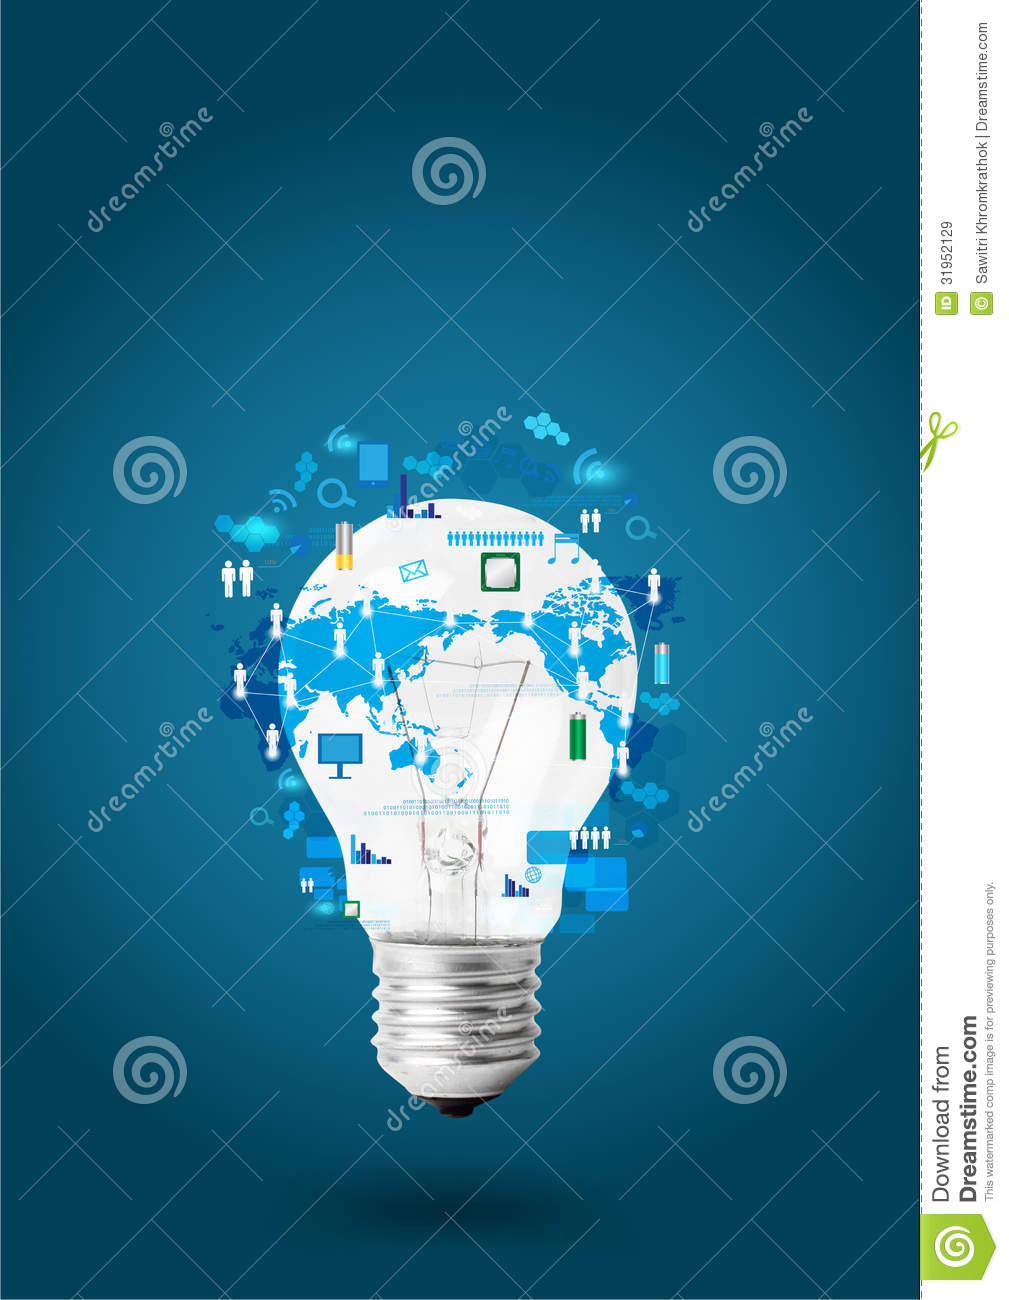 Creative Light Bulb With Technology Business Network Stock